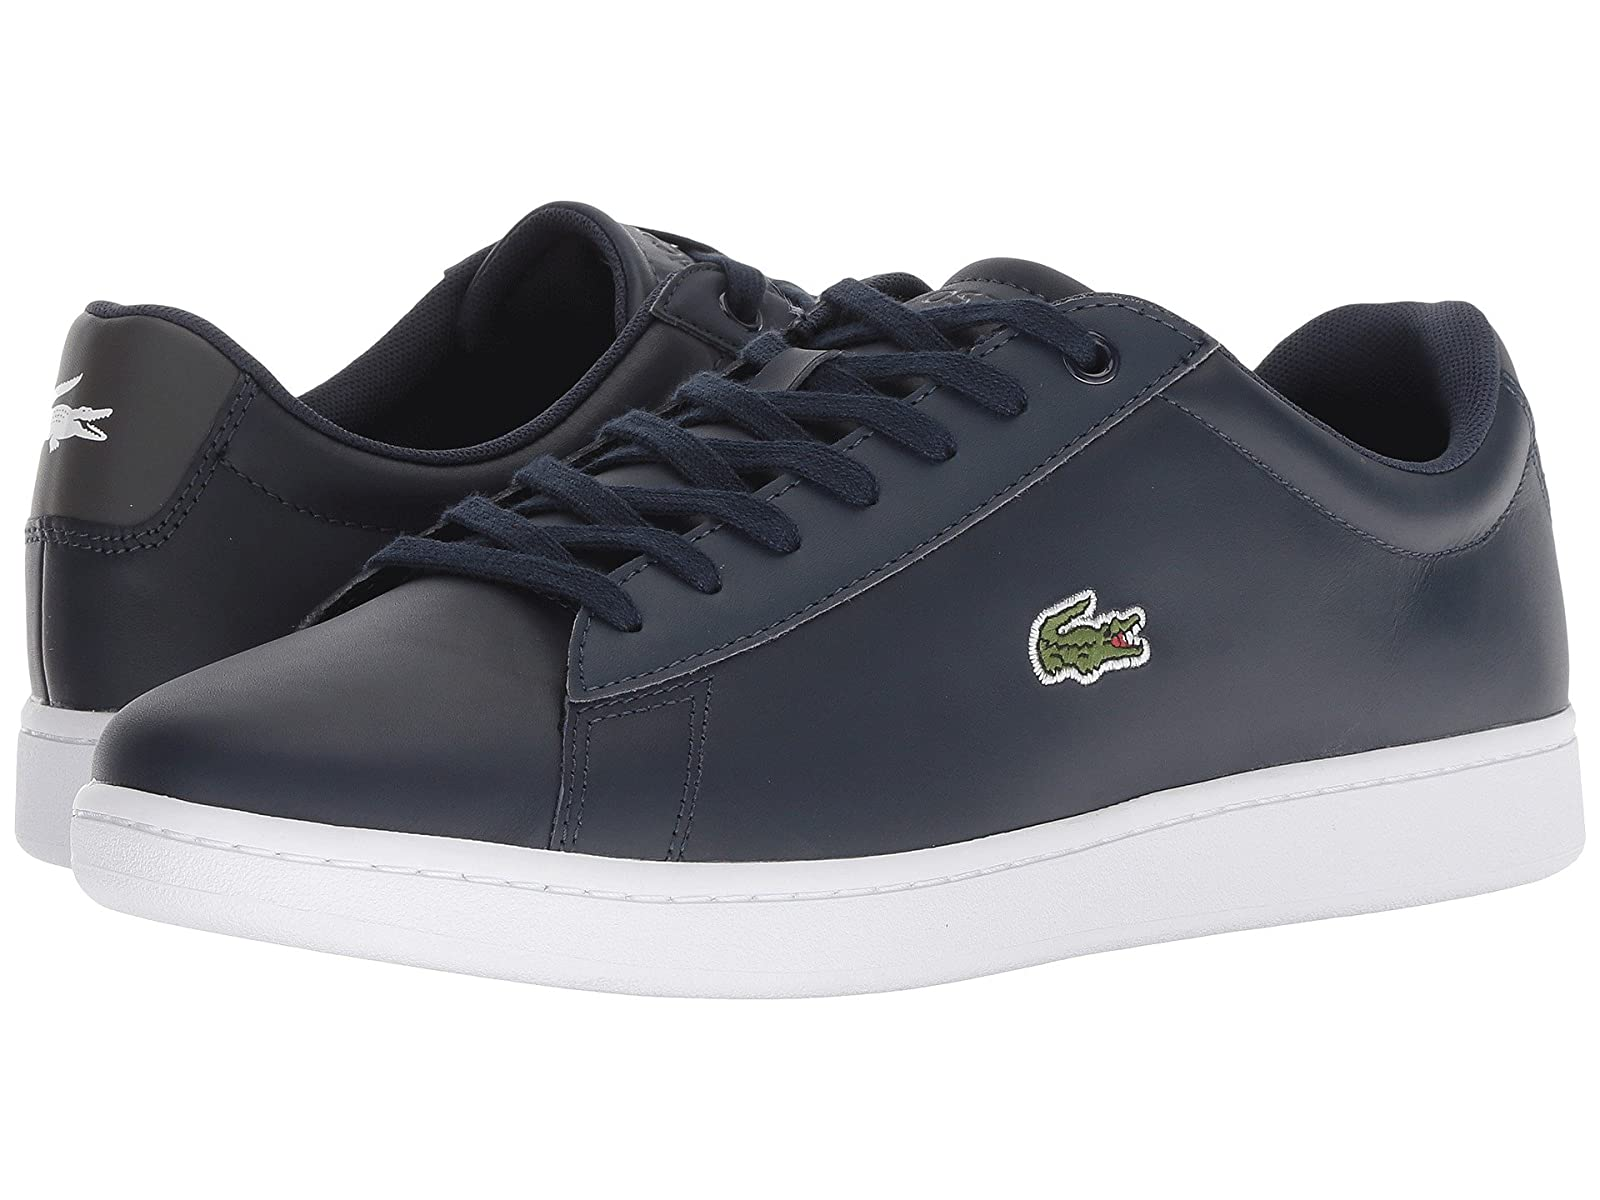 Lacoste Hydez 318 1 PCheap and distinctive eye-catching shoes